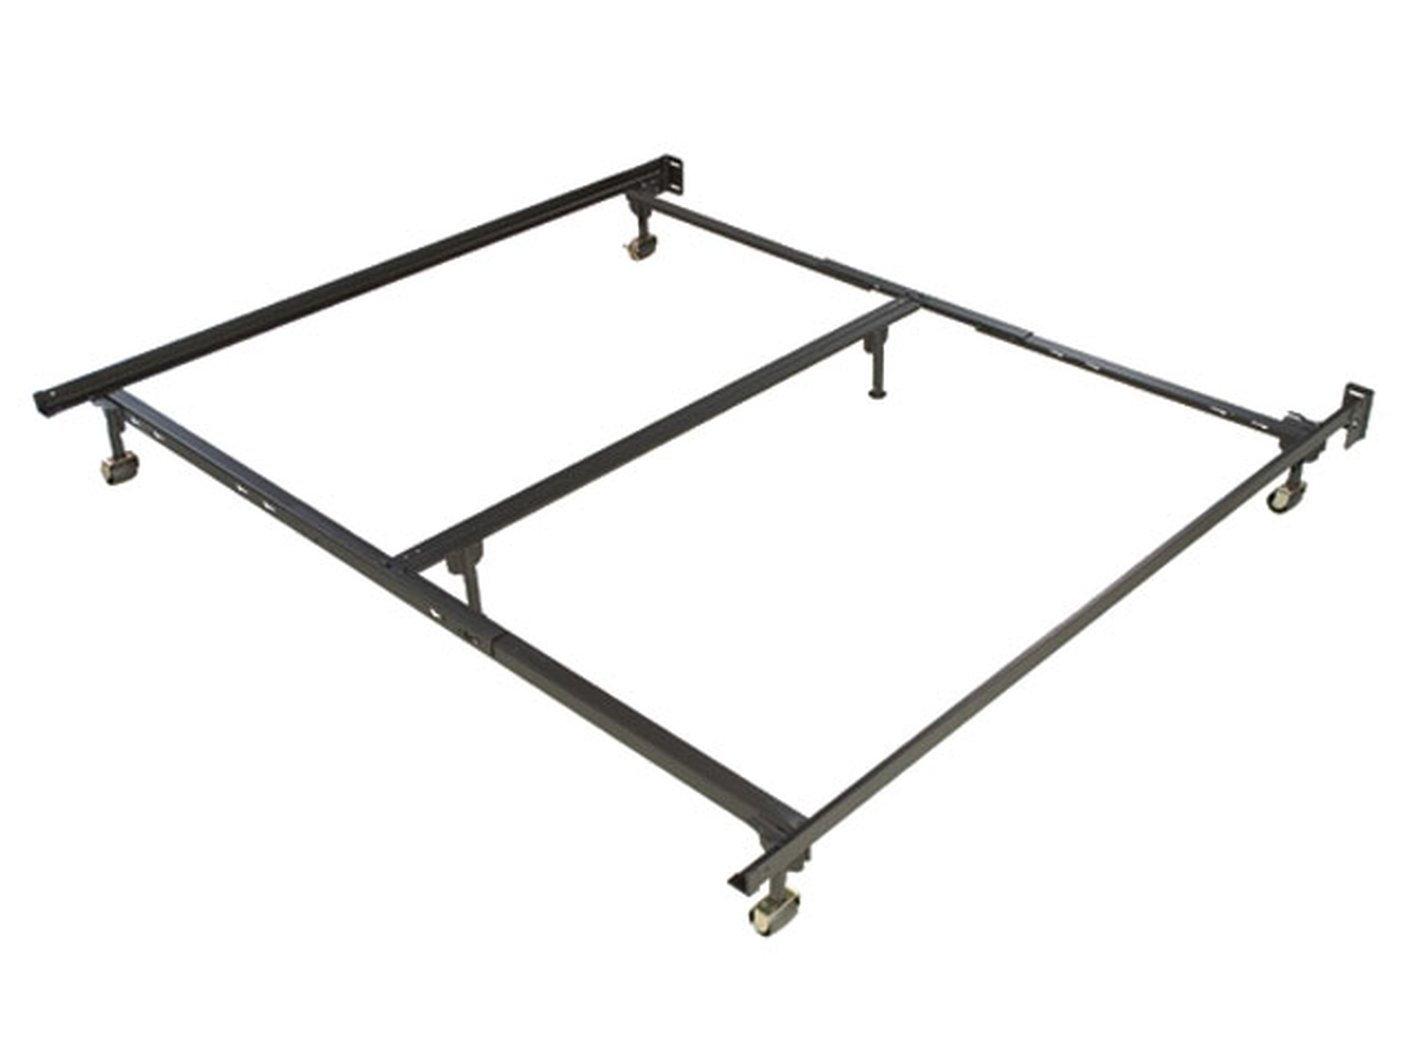 Amazing black metal queen or cal king or eastern king size metal bed frame hhrvpls